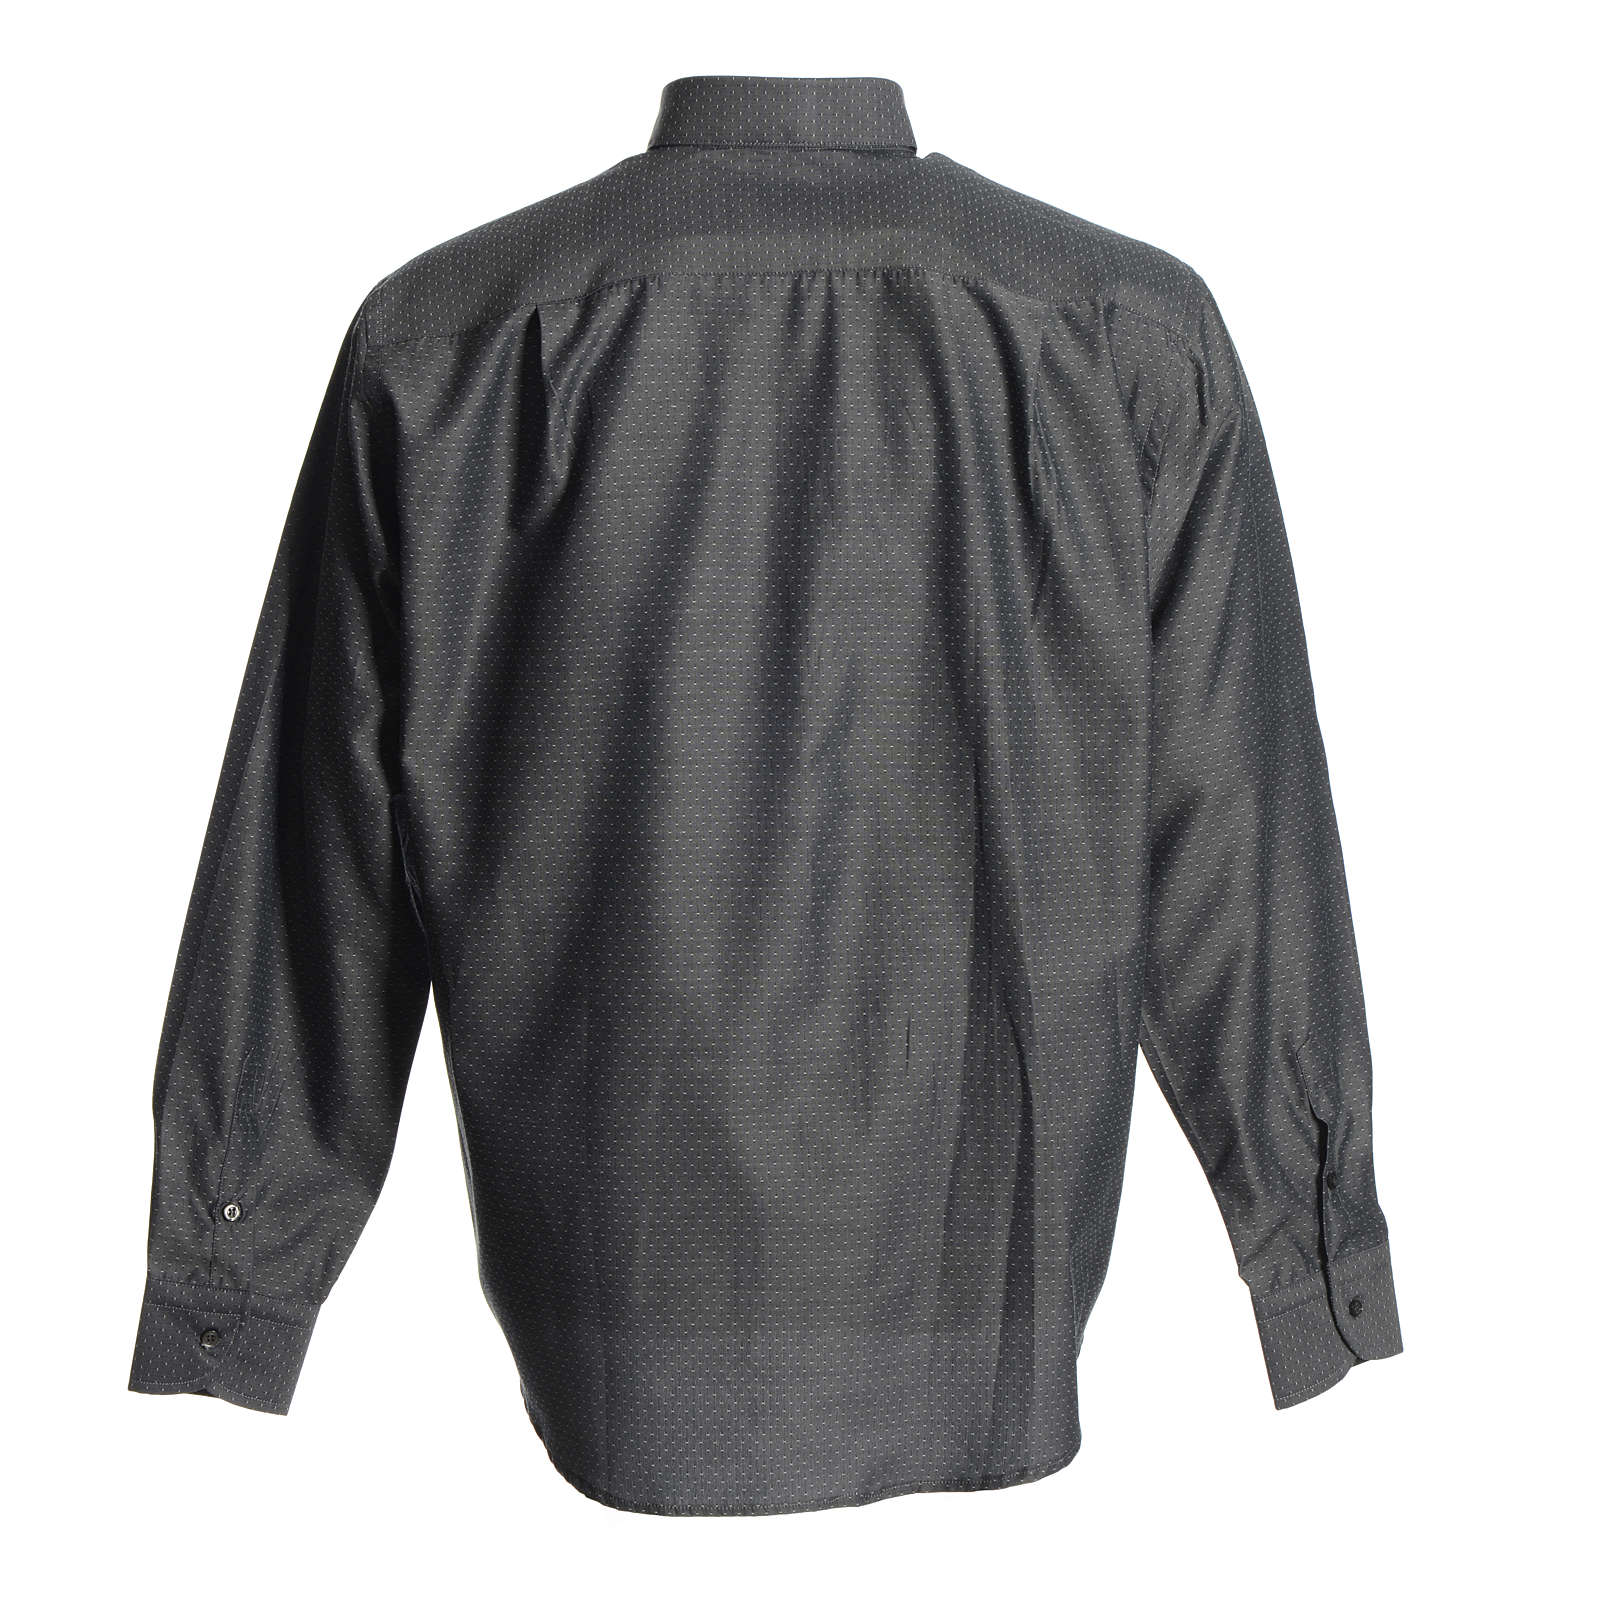 Chemise clergy coton polyester gris 4